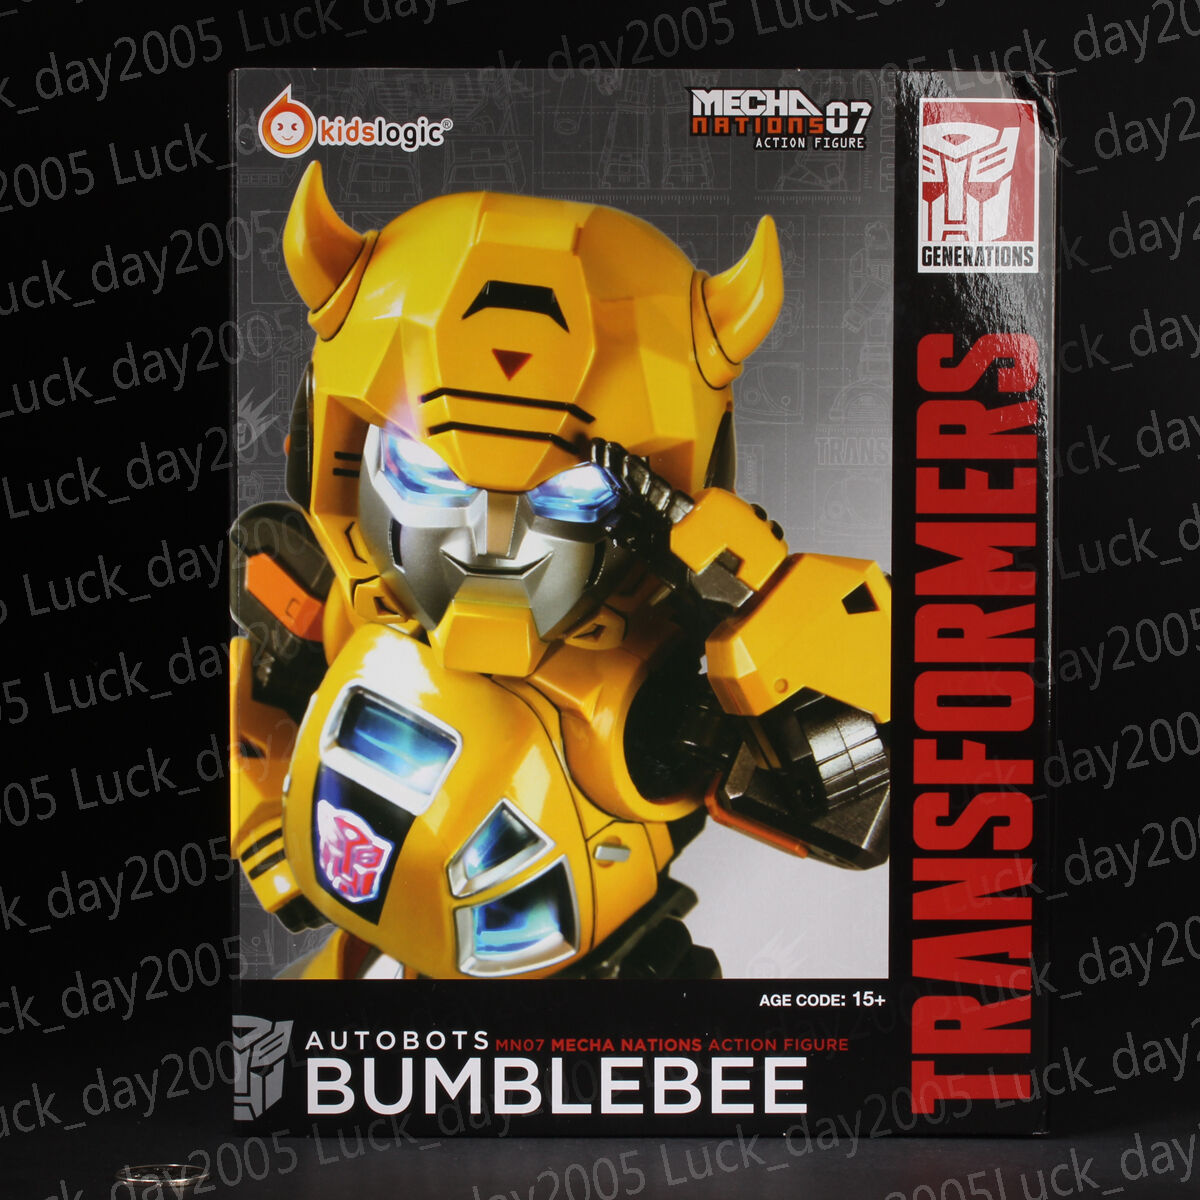 Kids Logic Transformers Mecha Nation Autobots Bumblebee LED Figure